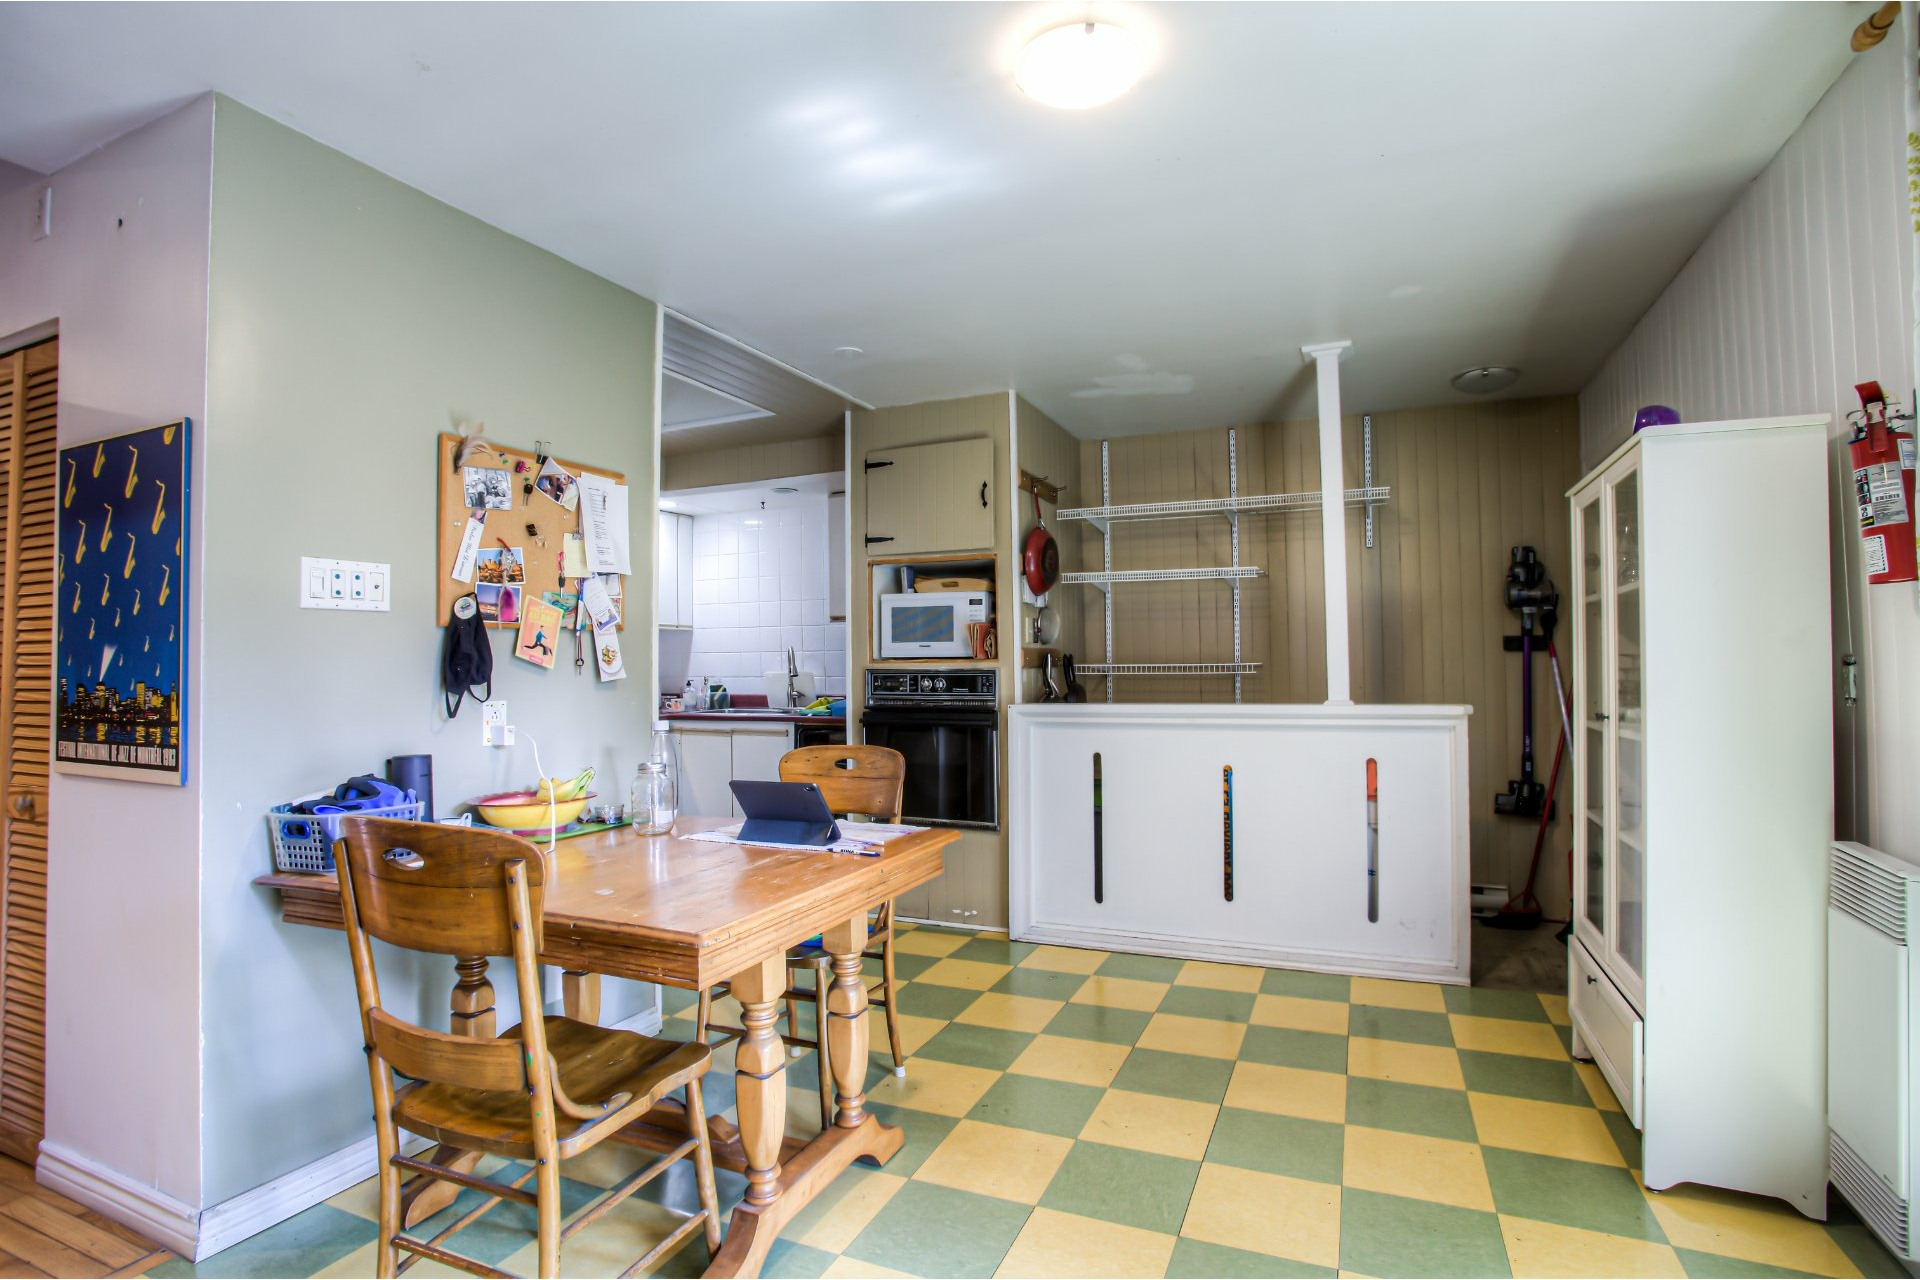 image 7 - Apartment For sale Ville-Marie Montréal  - 10 rooms